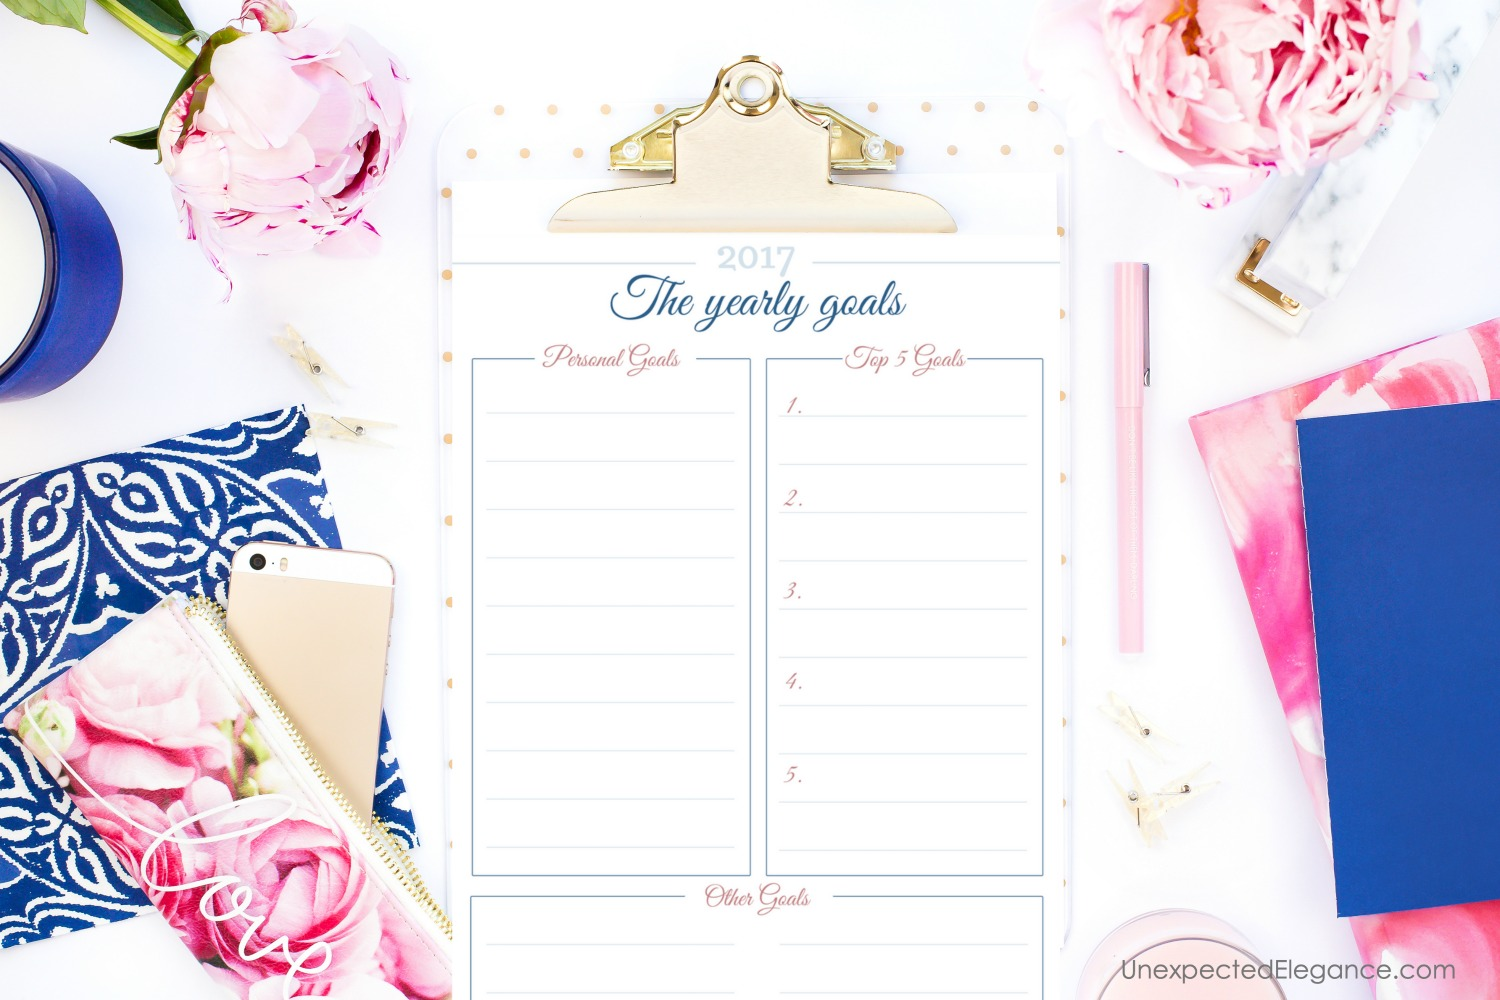 Plan for your best year yet! Get some tips for how to stick to your goals and download a FREE 2017 planner to keep track of everything.